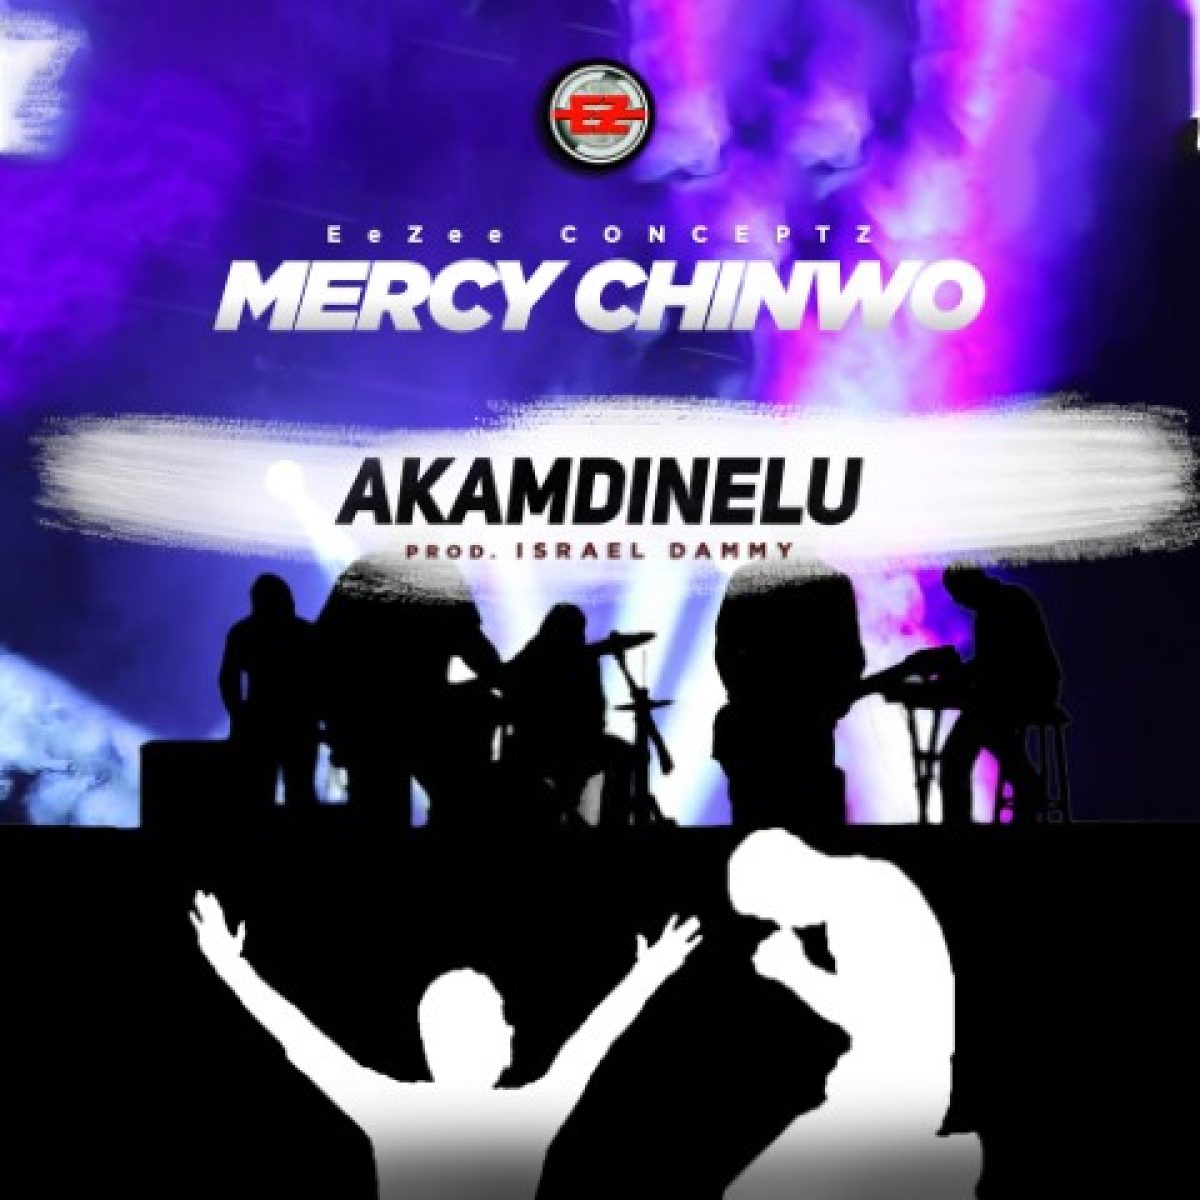 Download Mercy Chinwo Akamdinelu Mp3 Lyrics Video Jesusful